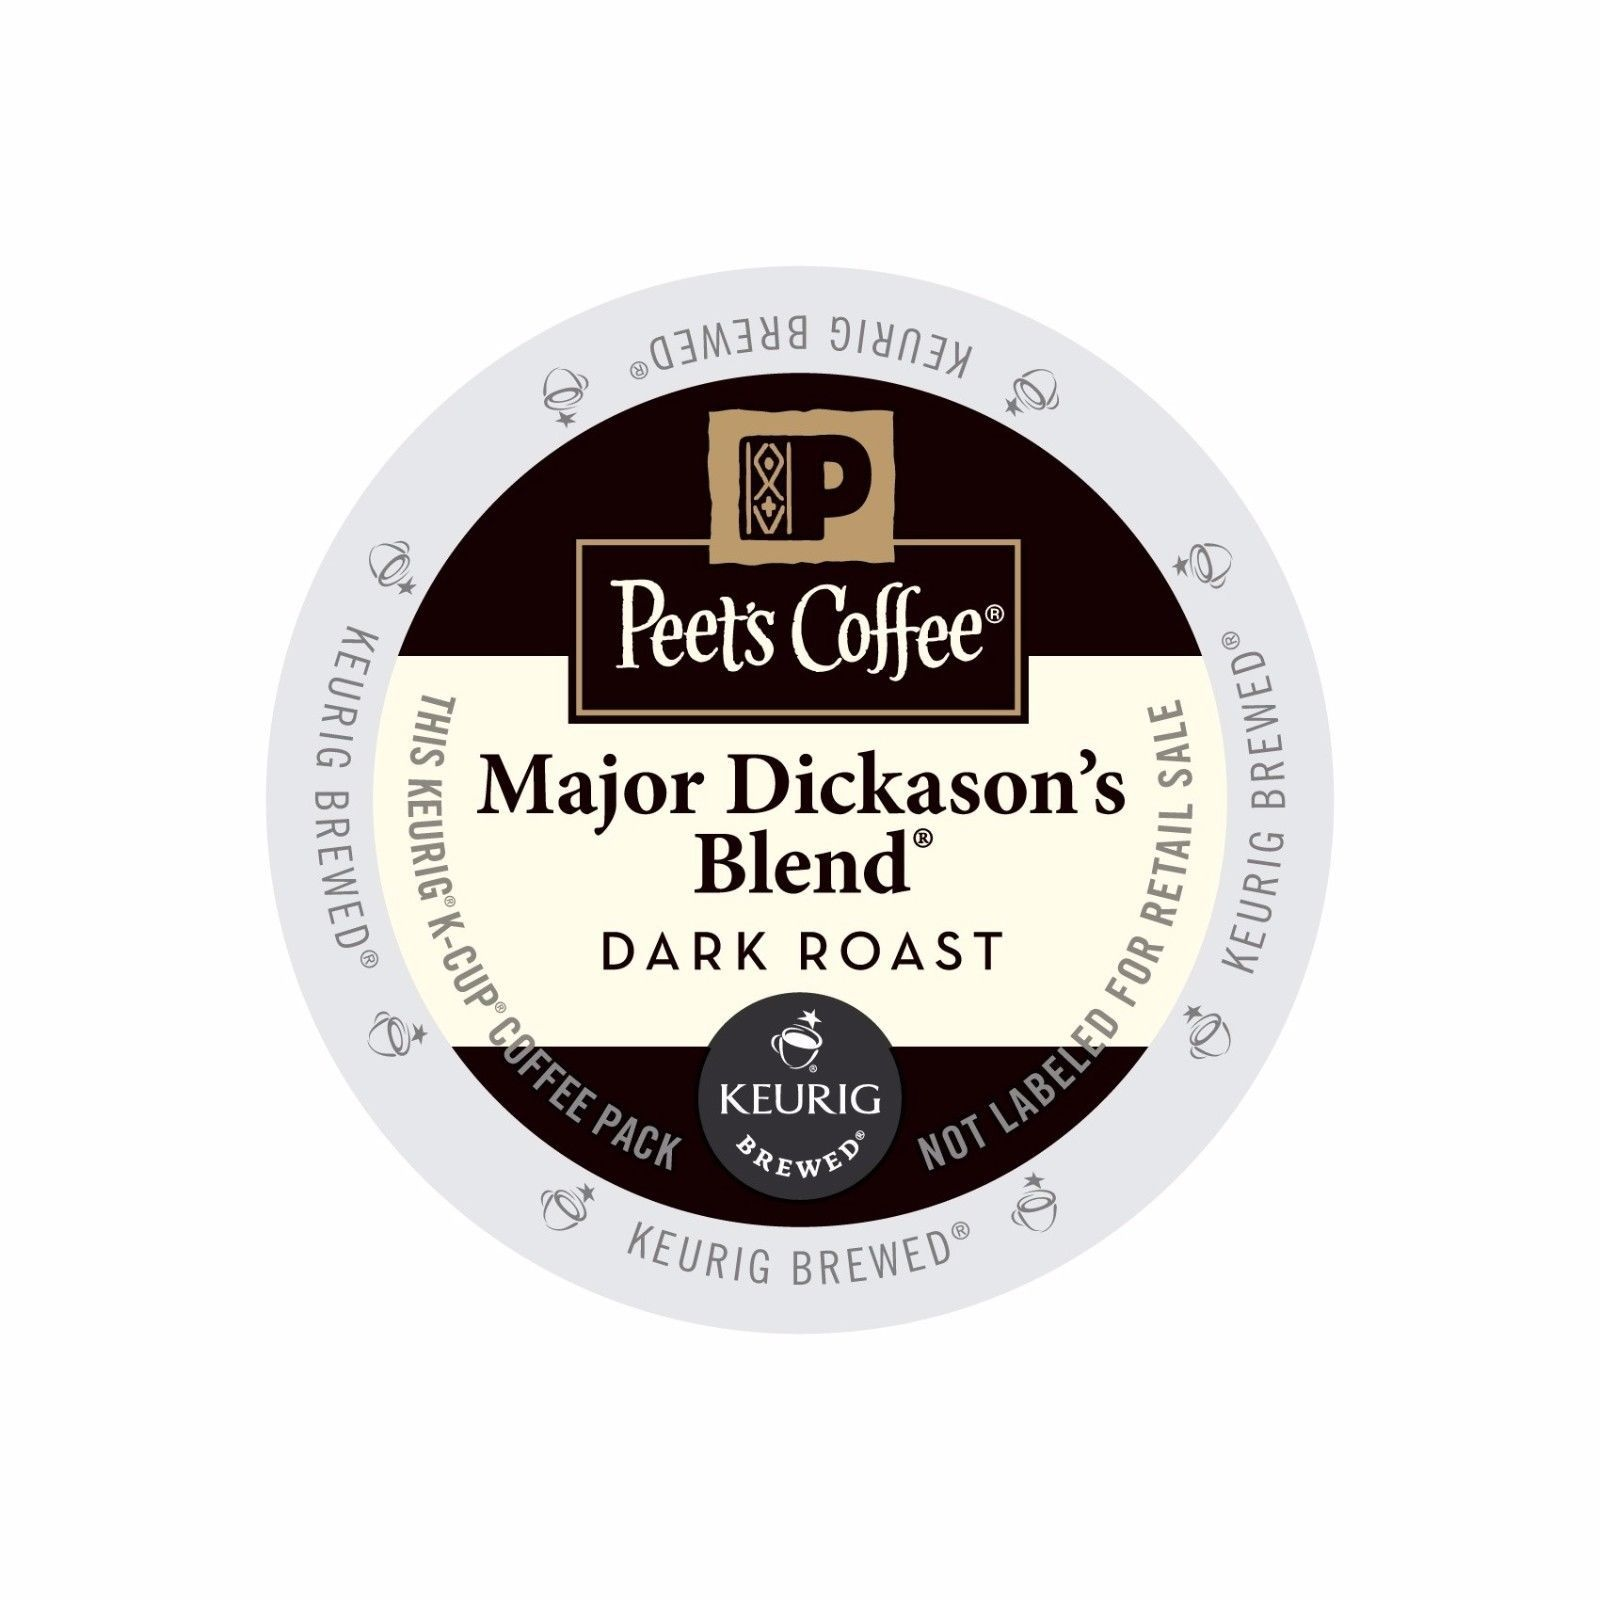 Peet's Coffee Major Dickason's Blend Coffee, 44 count Kcups, FREE SHIPPING